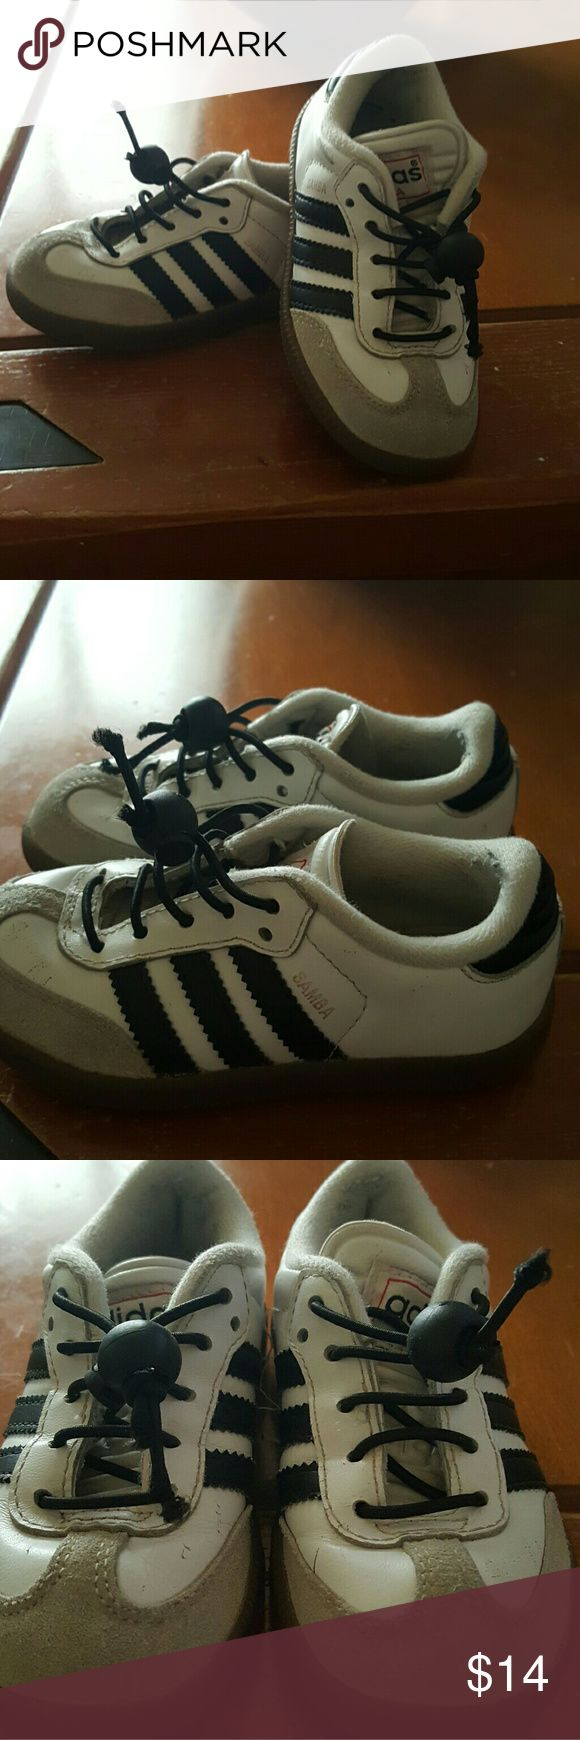 Adidas samba classic toddler Used size 8k Adidas Shoes